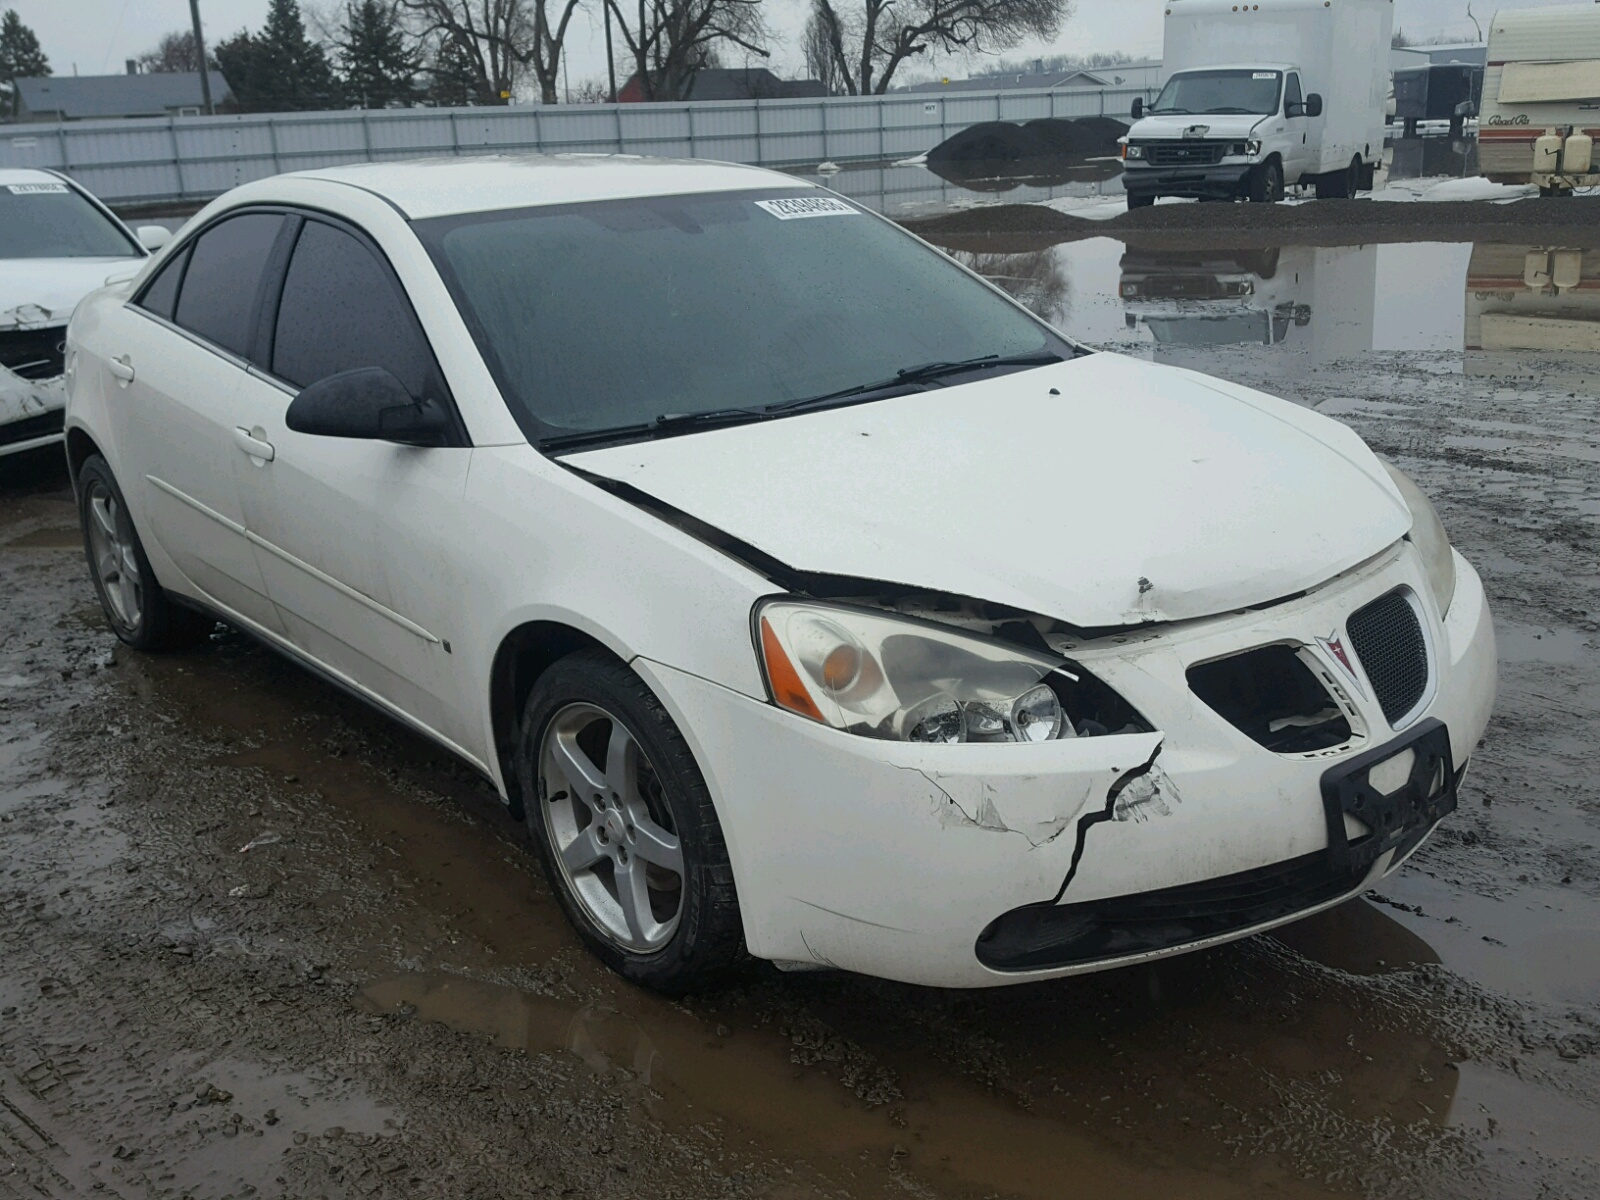 Auto Auction Ended On Vin 1g2zh548254148863 2005 Pontiac